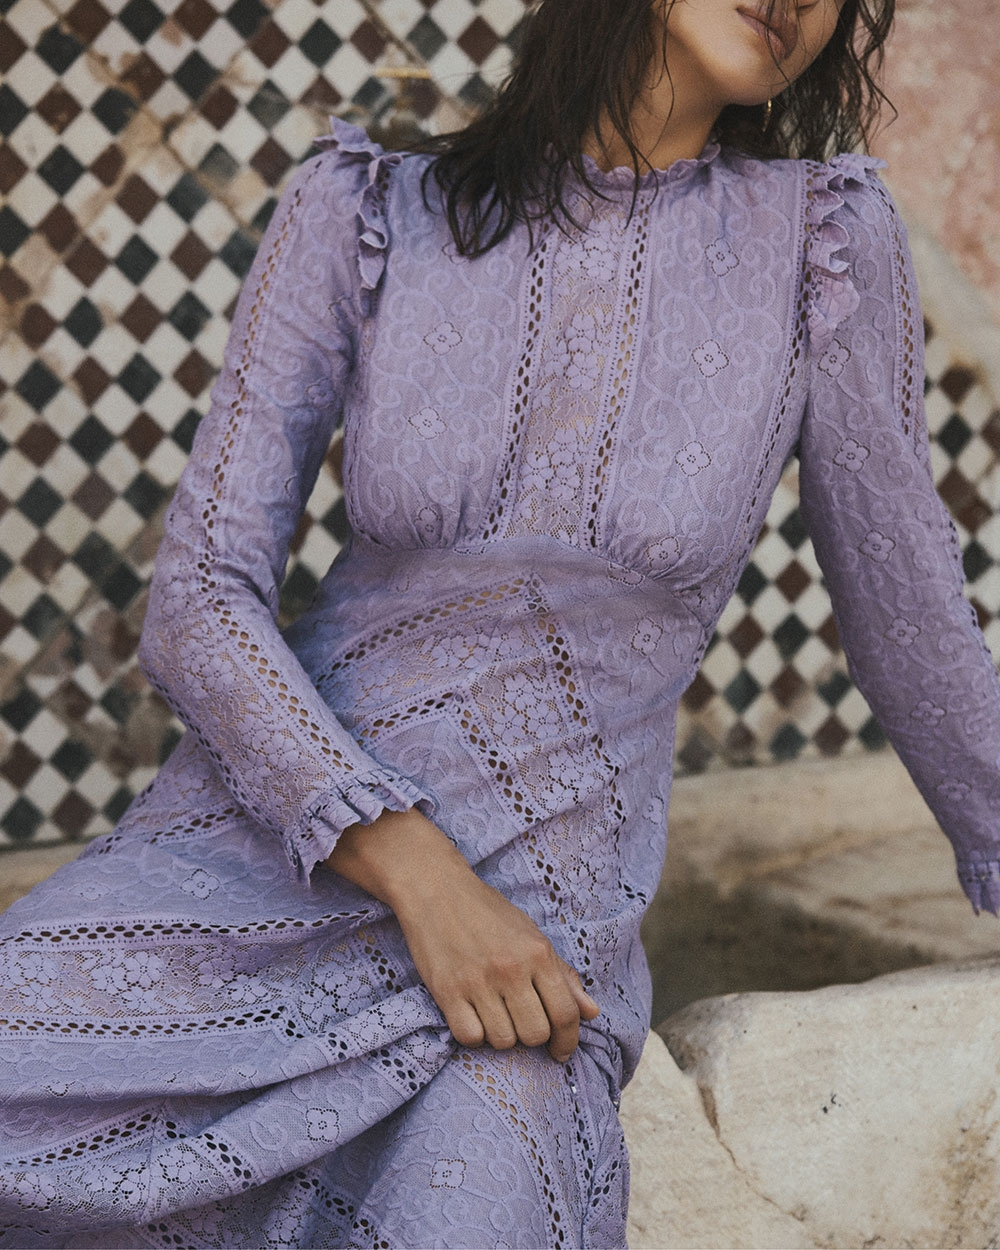 Irina wears the Brighton Panelled Lace Dress in Lilac